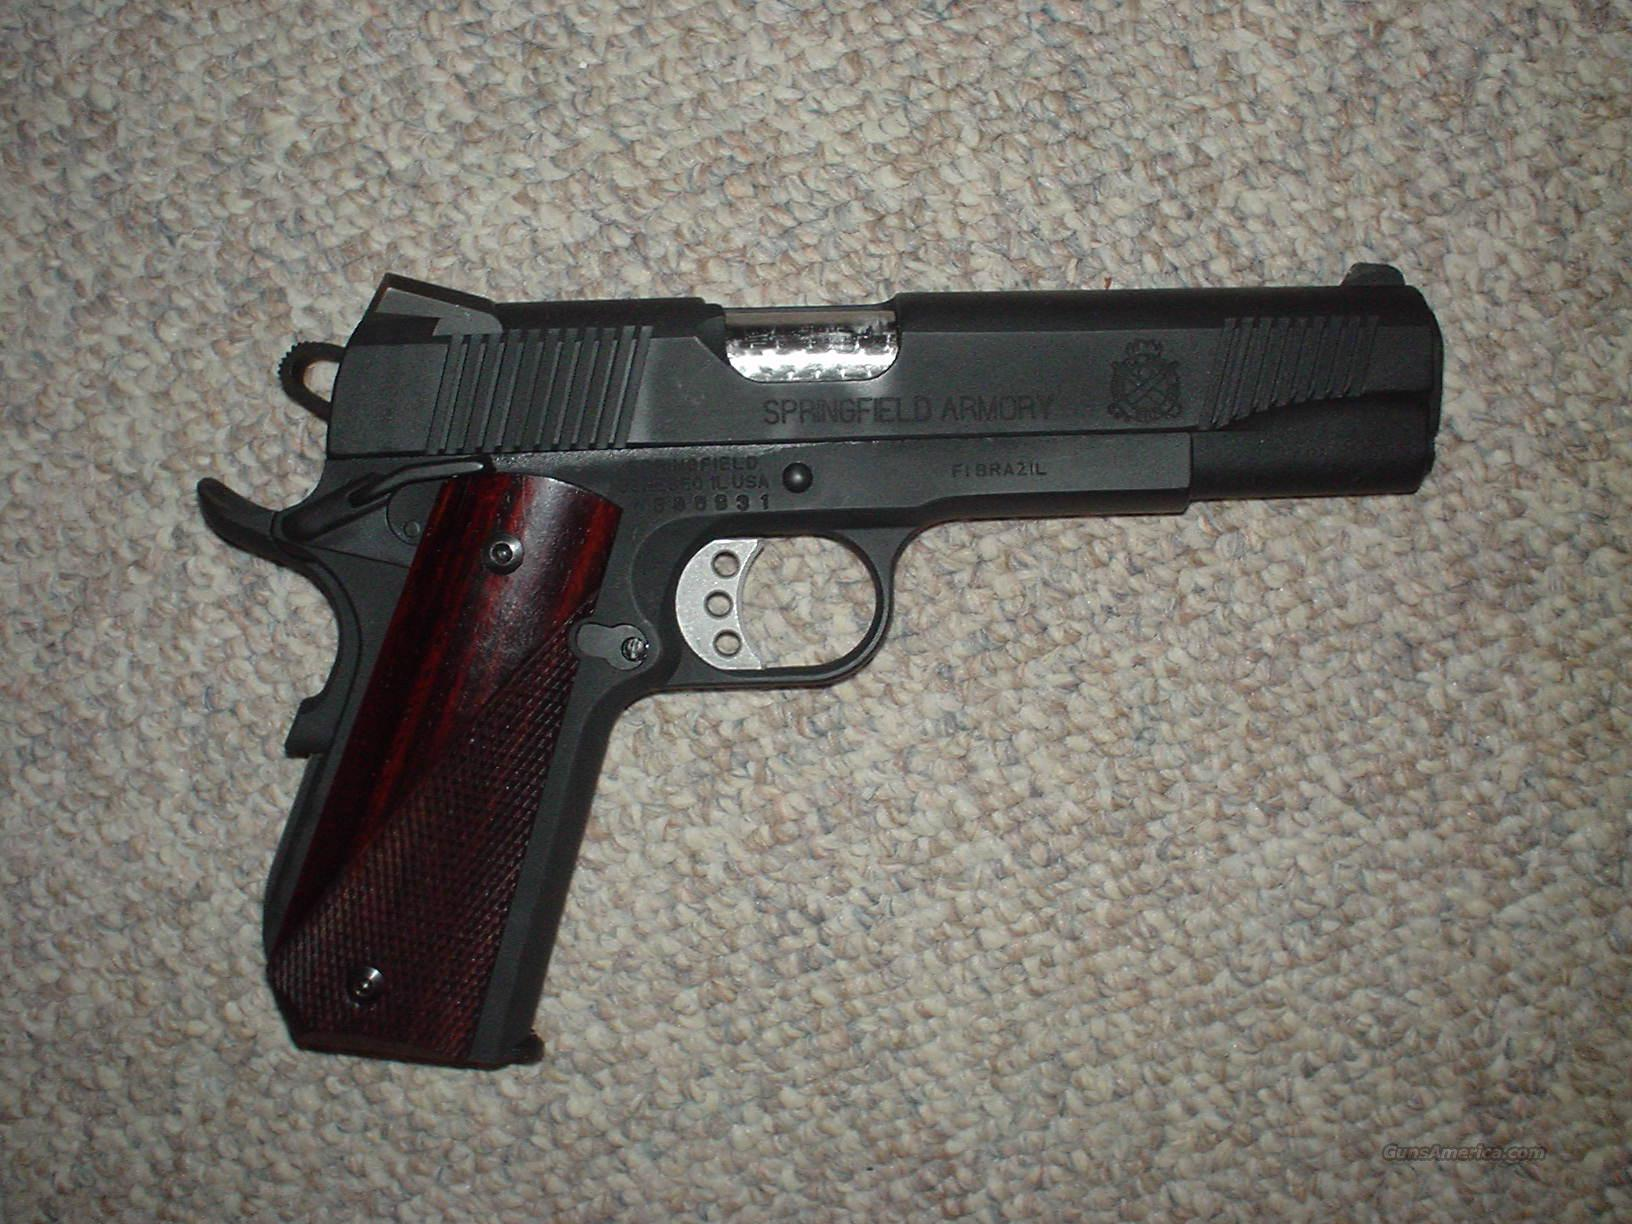 Springfield 1911 Bobtail with Ed Brown parts  Guns > Pistols > Springfield Armory Pistols > 1911 Type